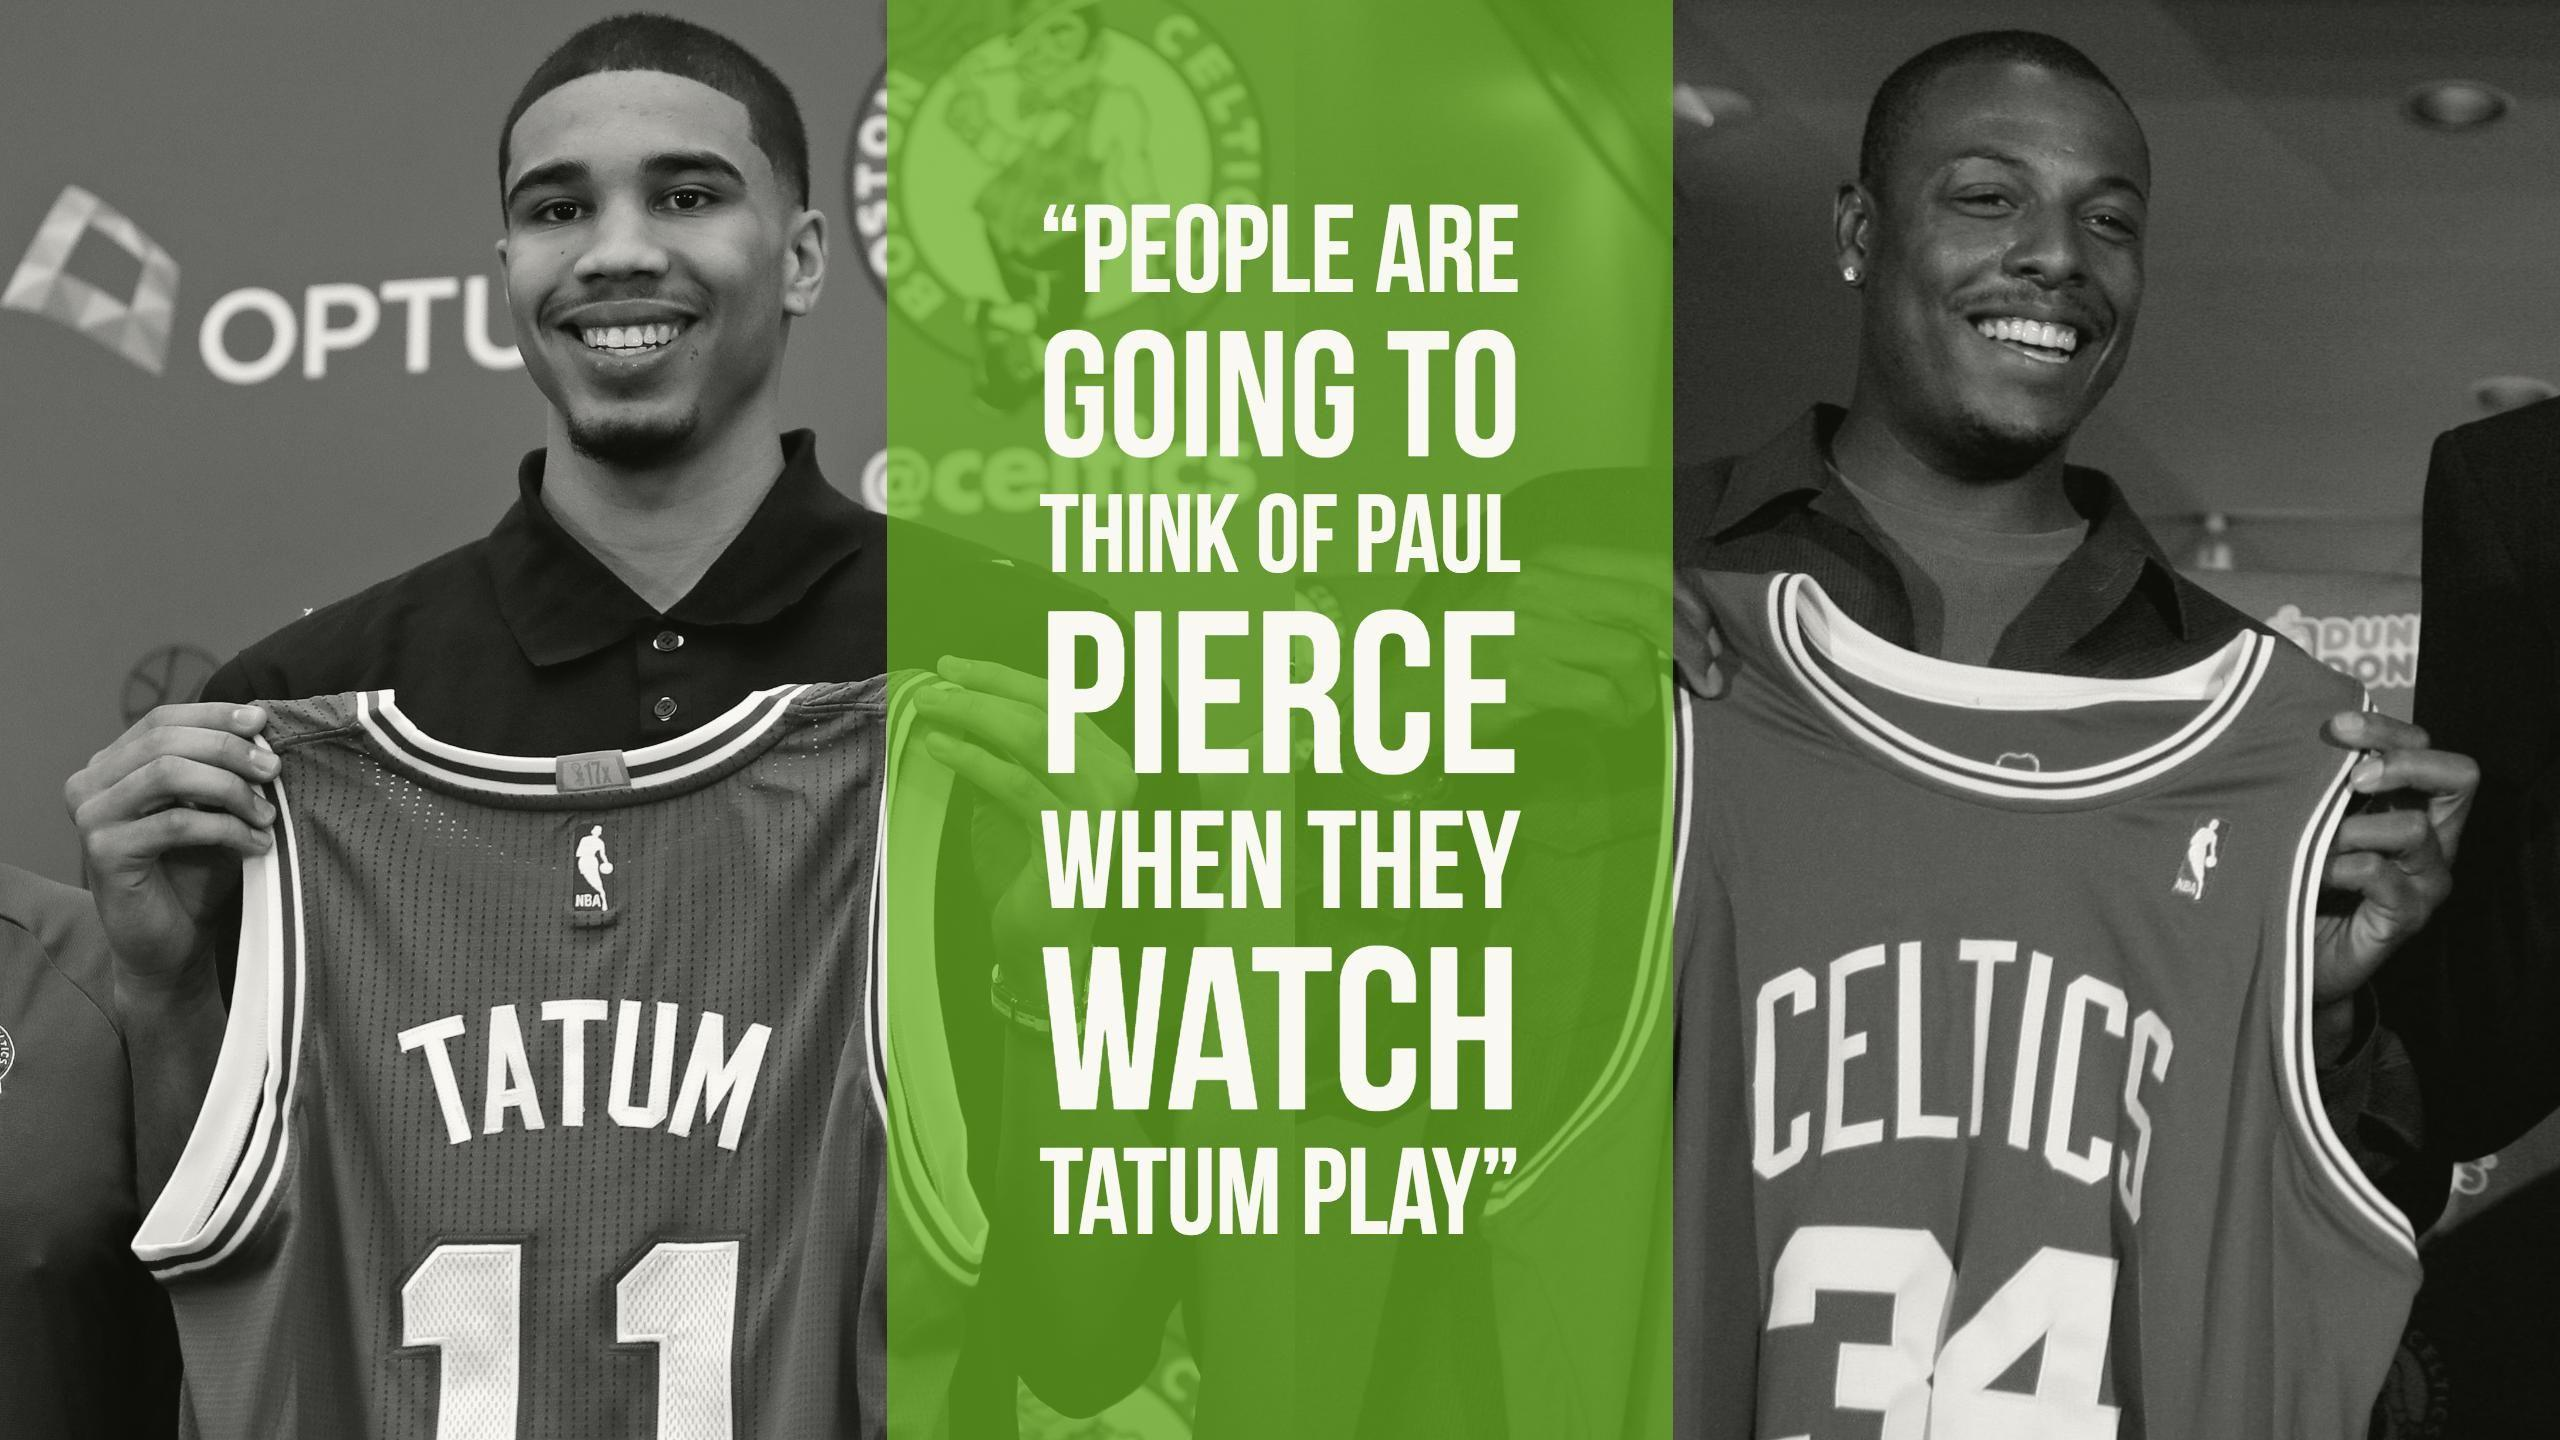 O'Connor: 'People are going to think of Paul Pierce when they